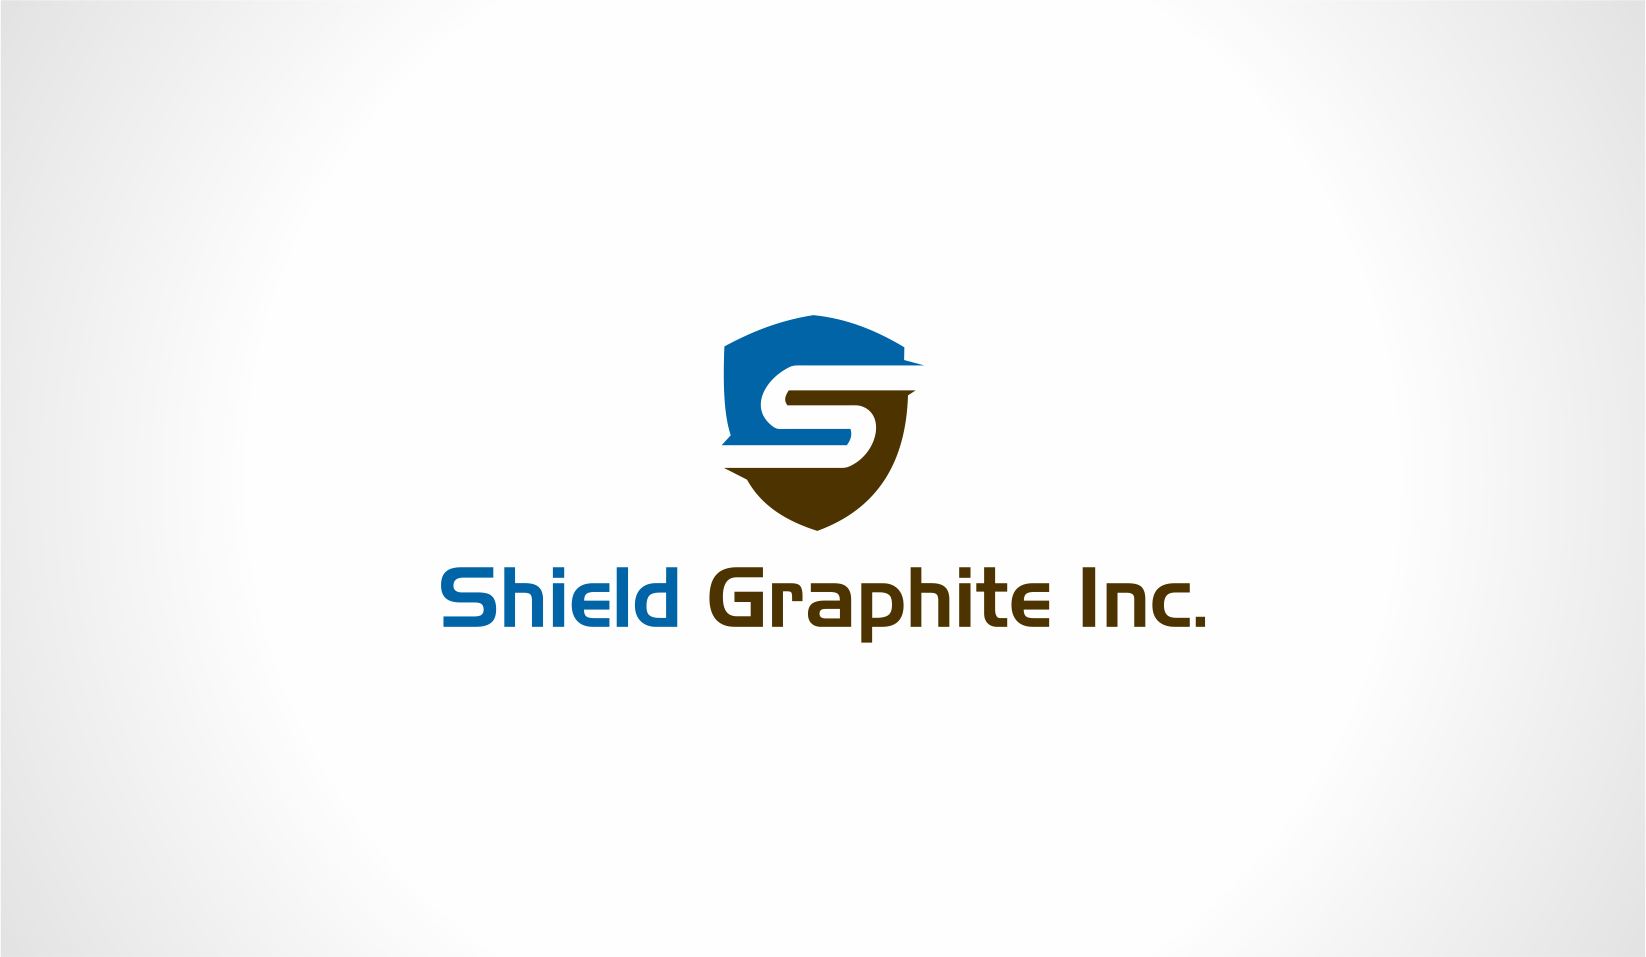 Logo Design by Muhammad Aslam - Entry No. 11 in the Logo Design Contest Imaginative Logo Design for Shield Graphite Inc..